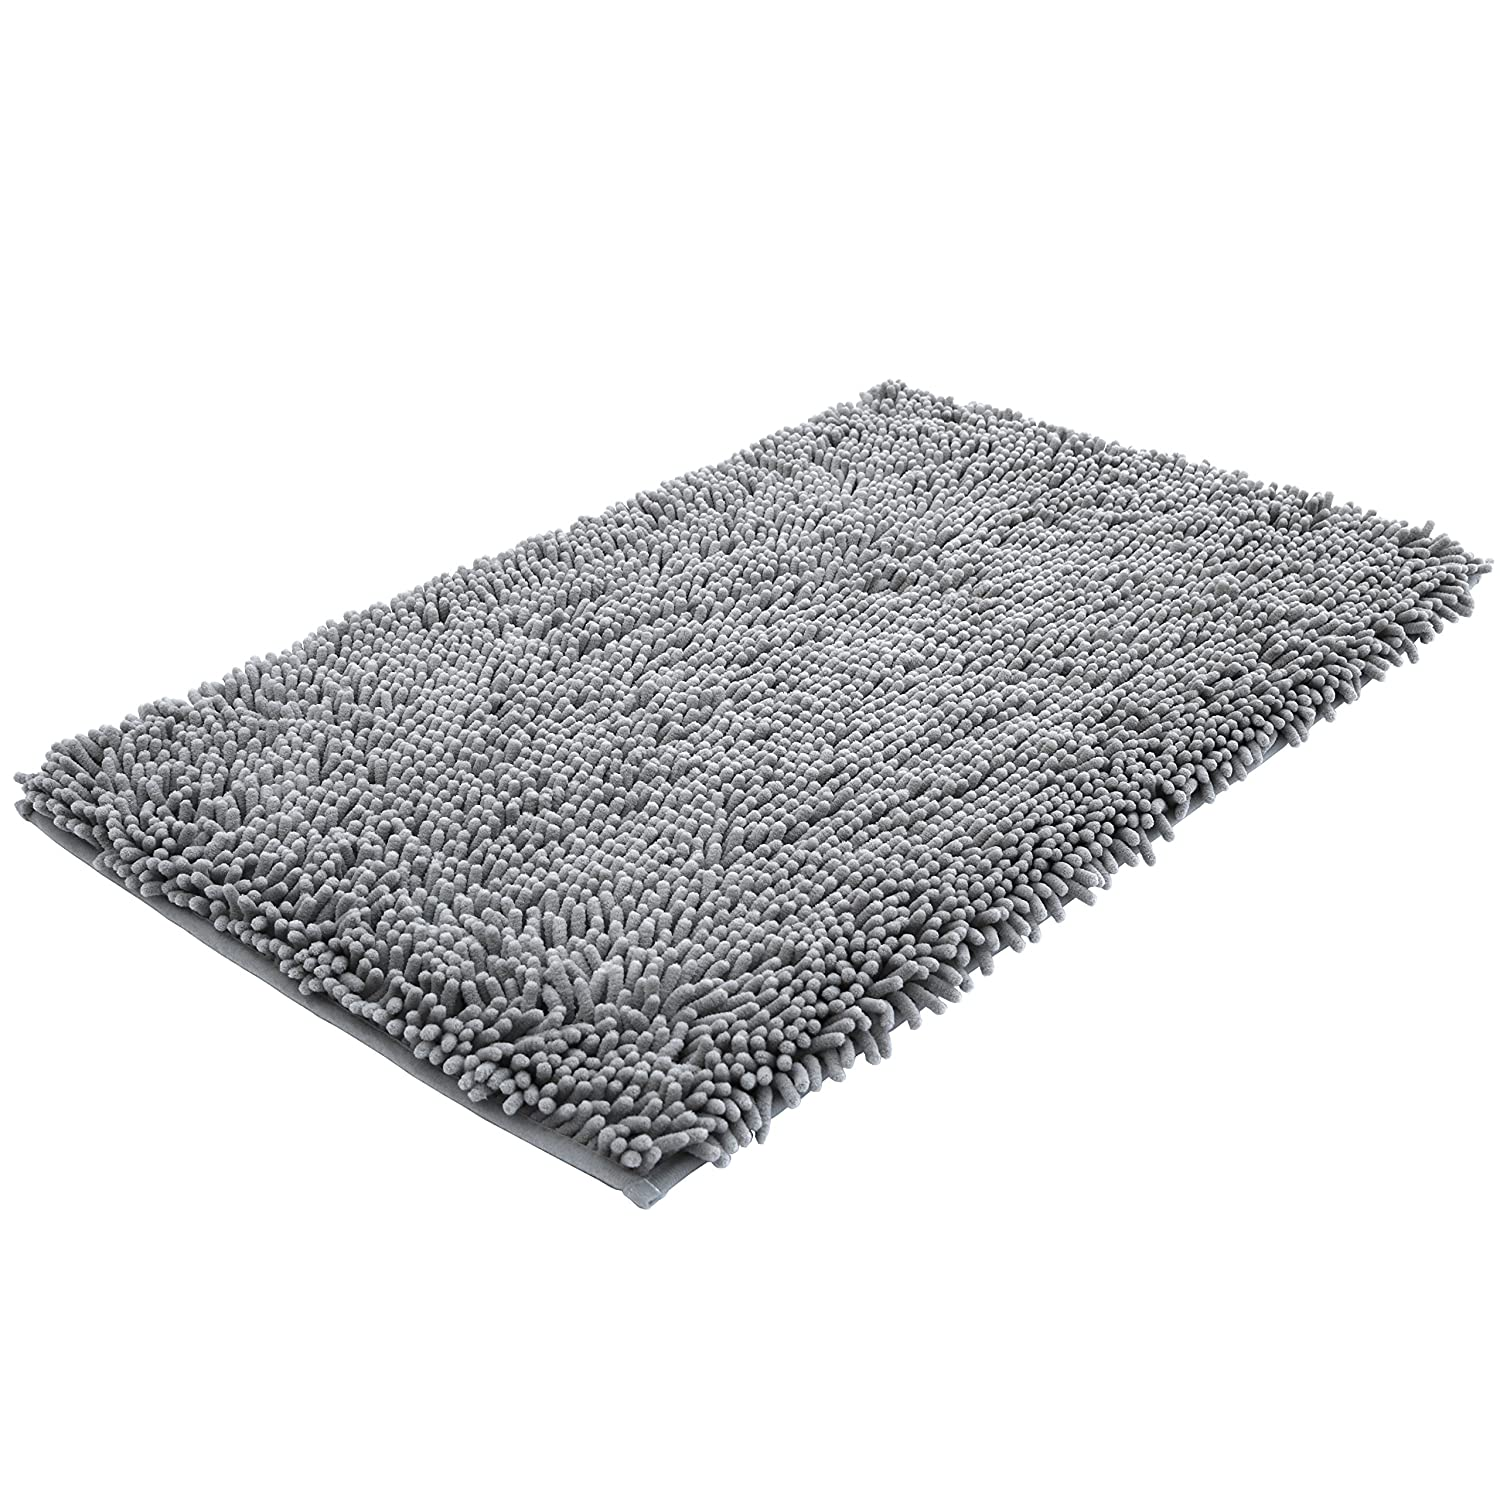 Shop Amazoncom Bath Rugs - Bright bath mat for bathroom decorating ideas